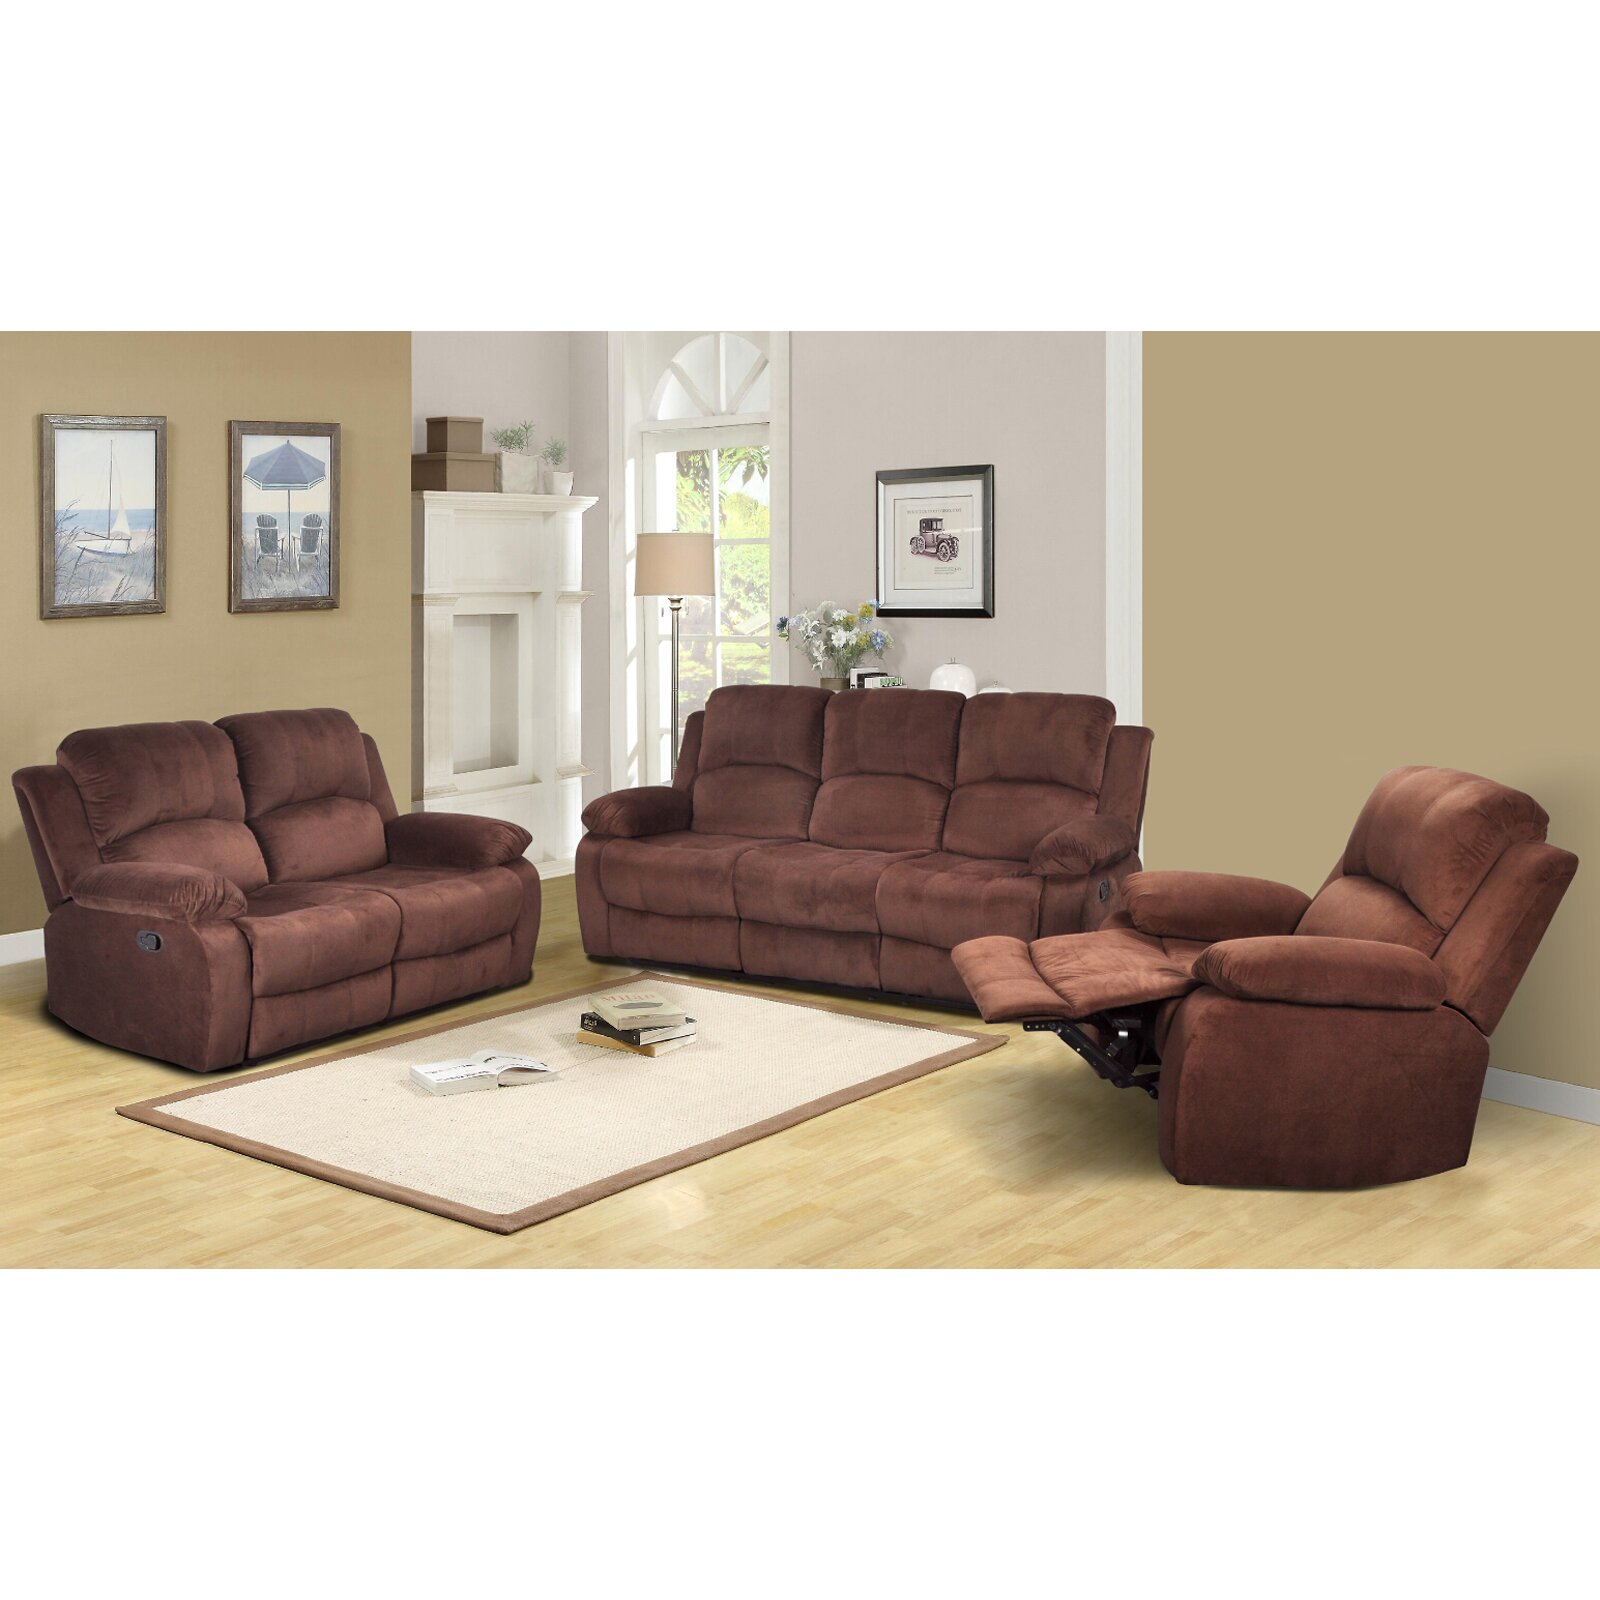 Beverly fine furniture denver 3 piece microfiber reclining - Microfiber living room furniture sets ...